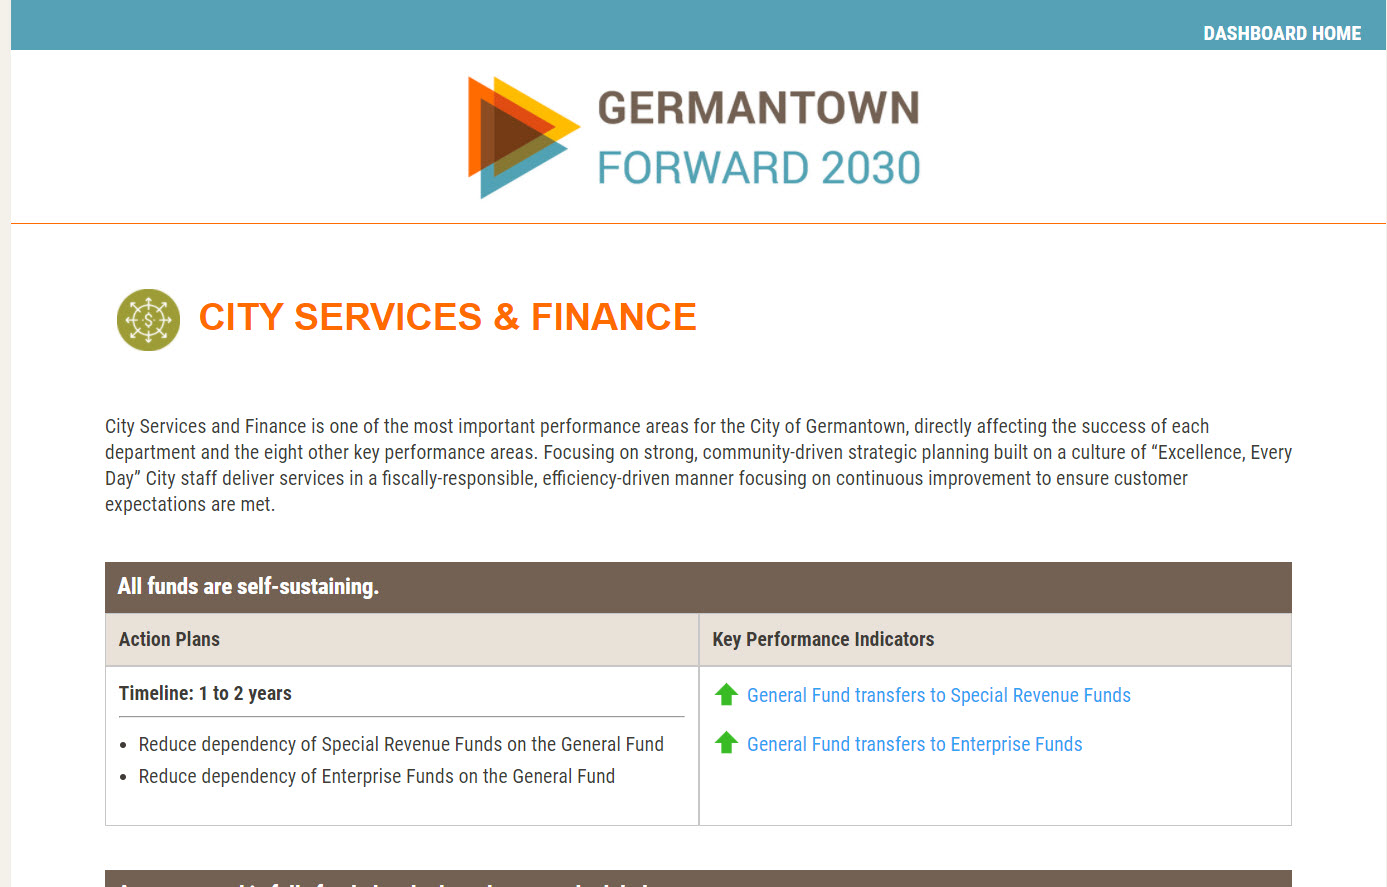 Germantown Dashboard with city services and finance objectives